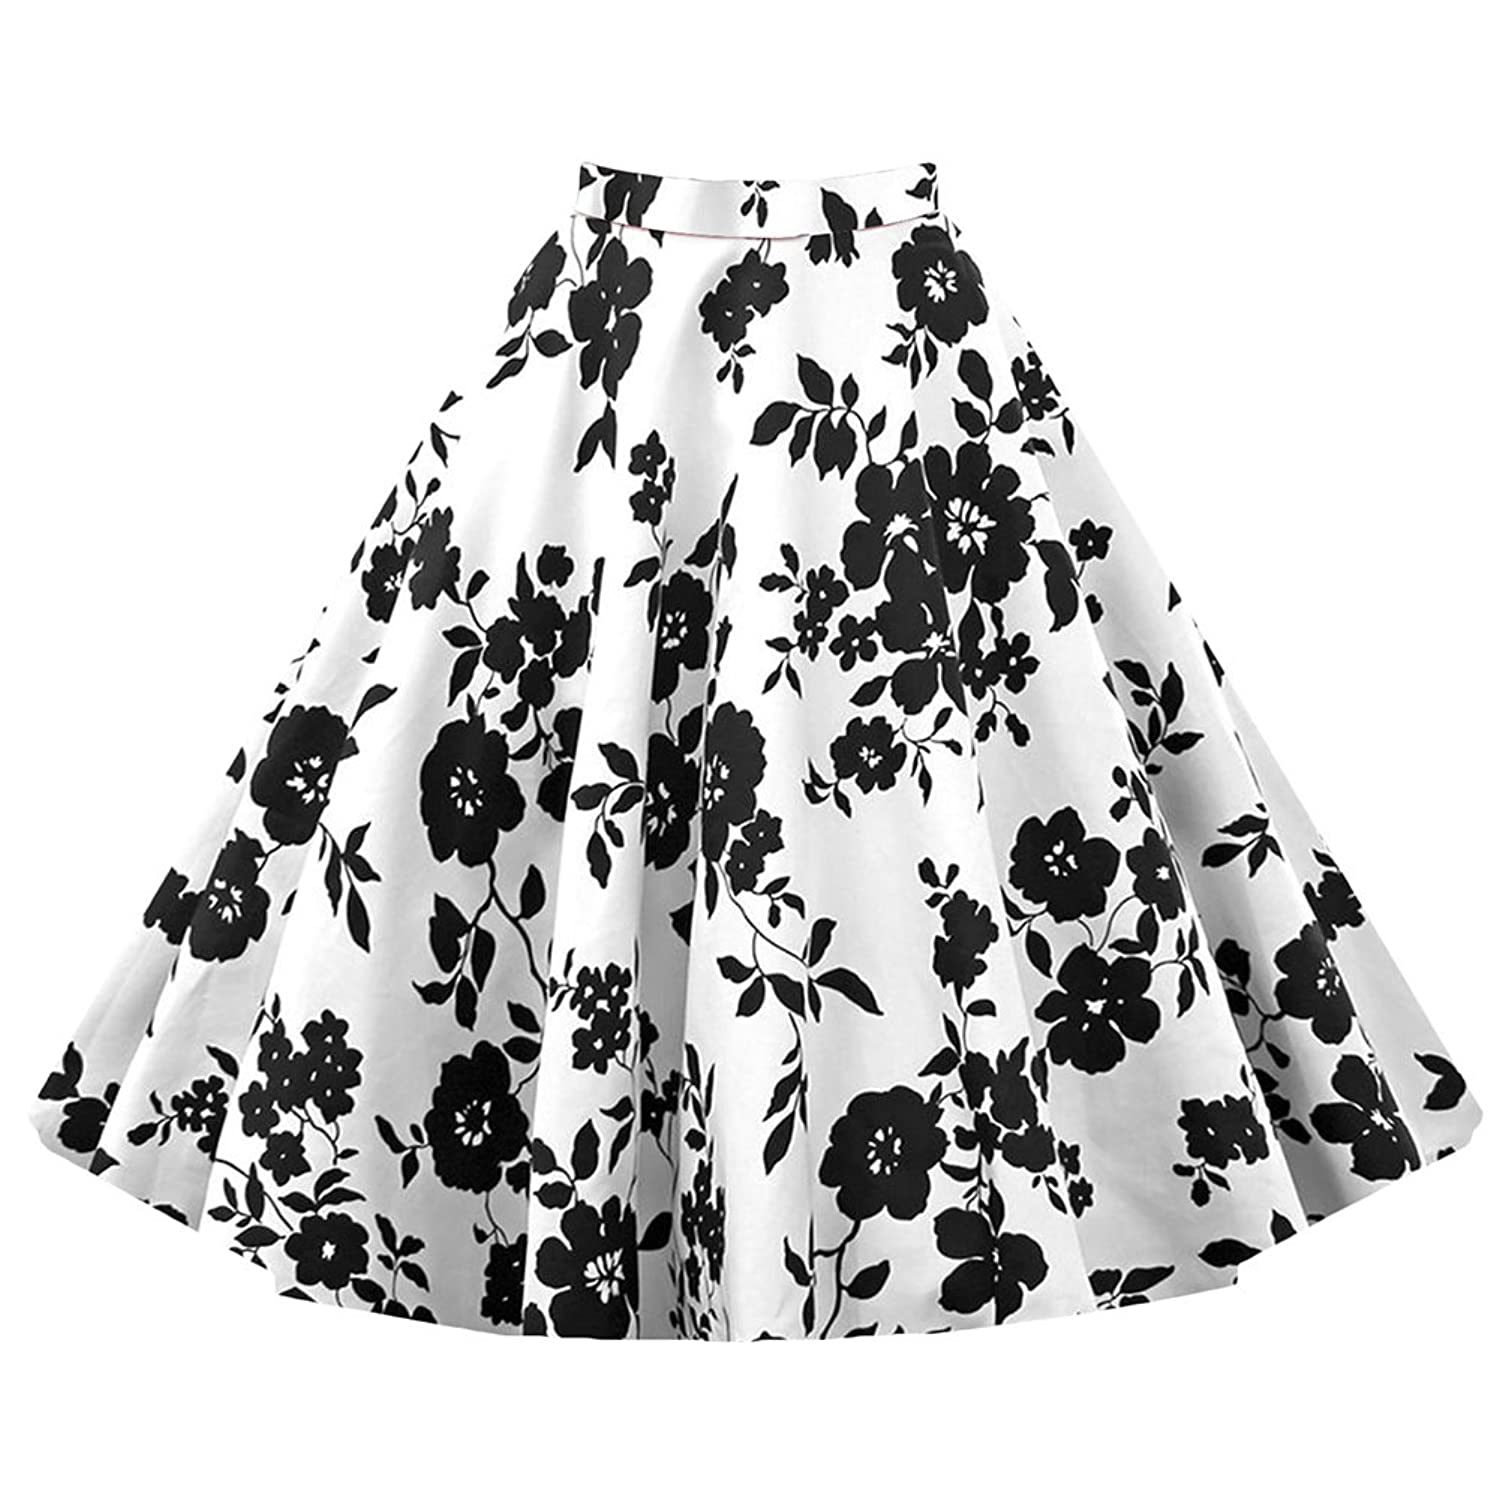 WintCO Damen Audrey Hepburn Rock 50s Rockabilly Vintage Buble Skirt Swing Röcke Retro